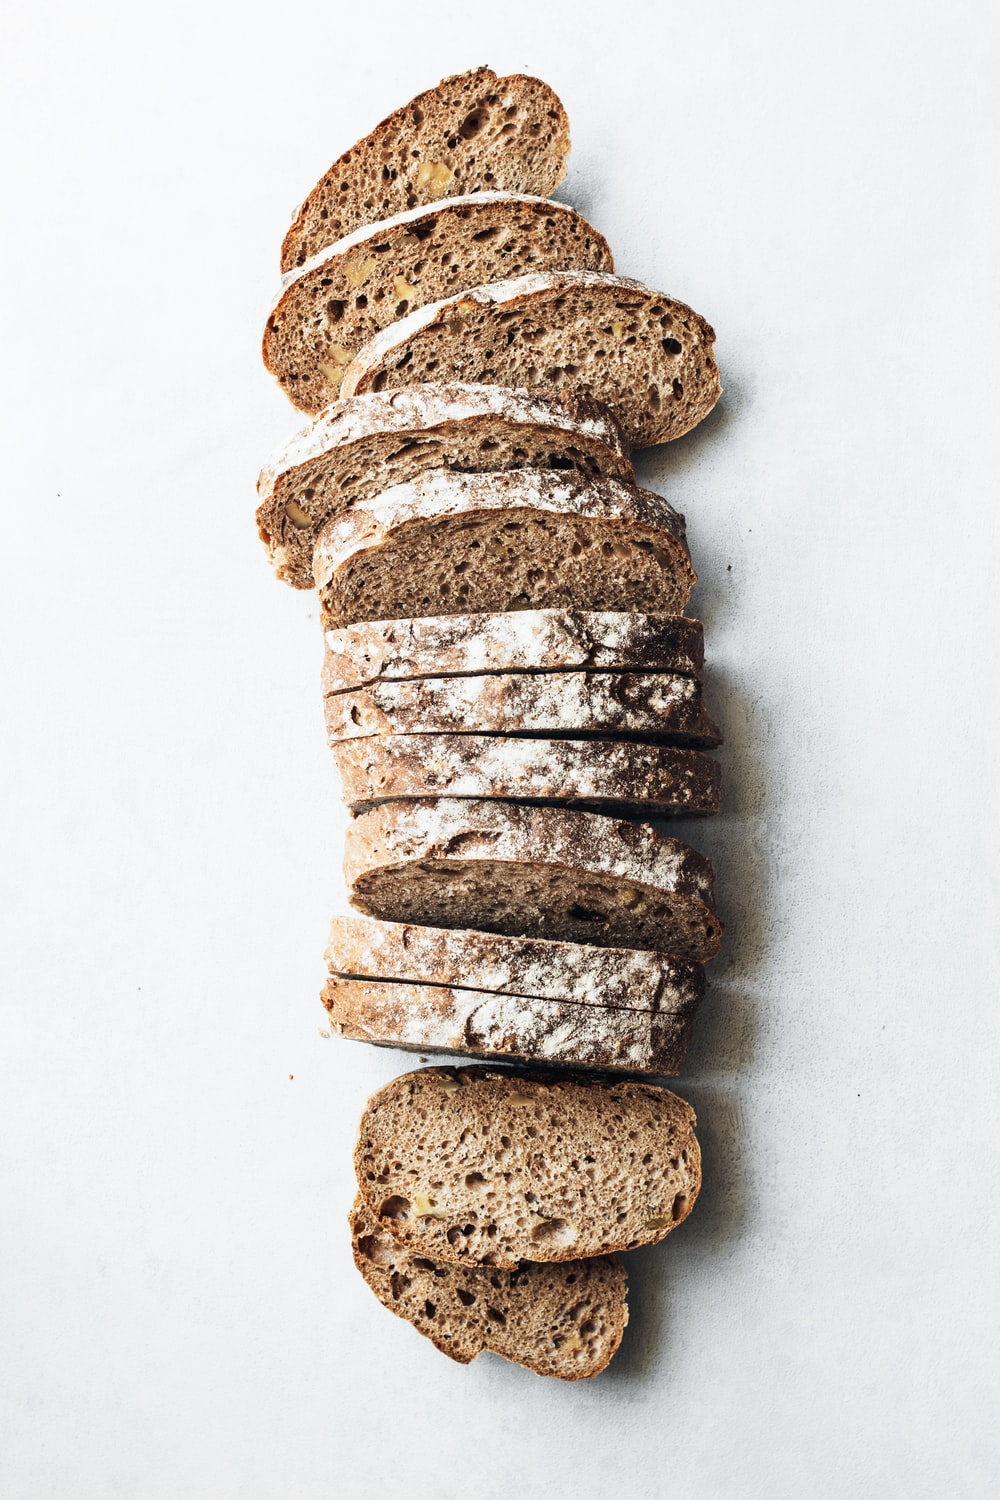 sliced breads on white surface